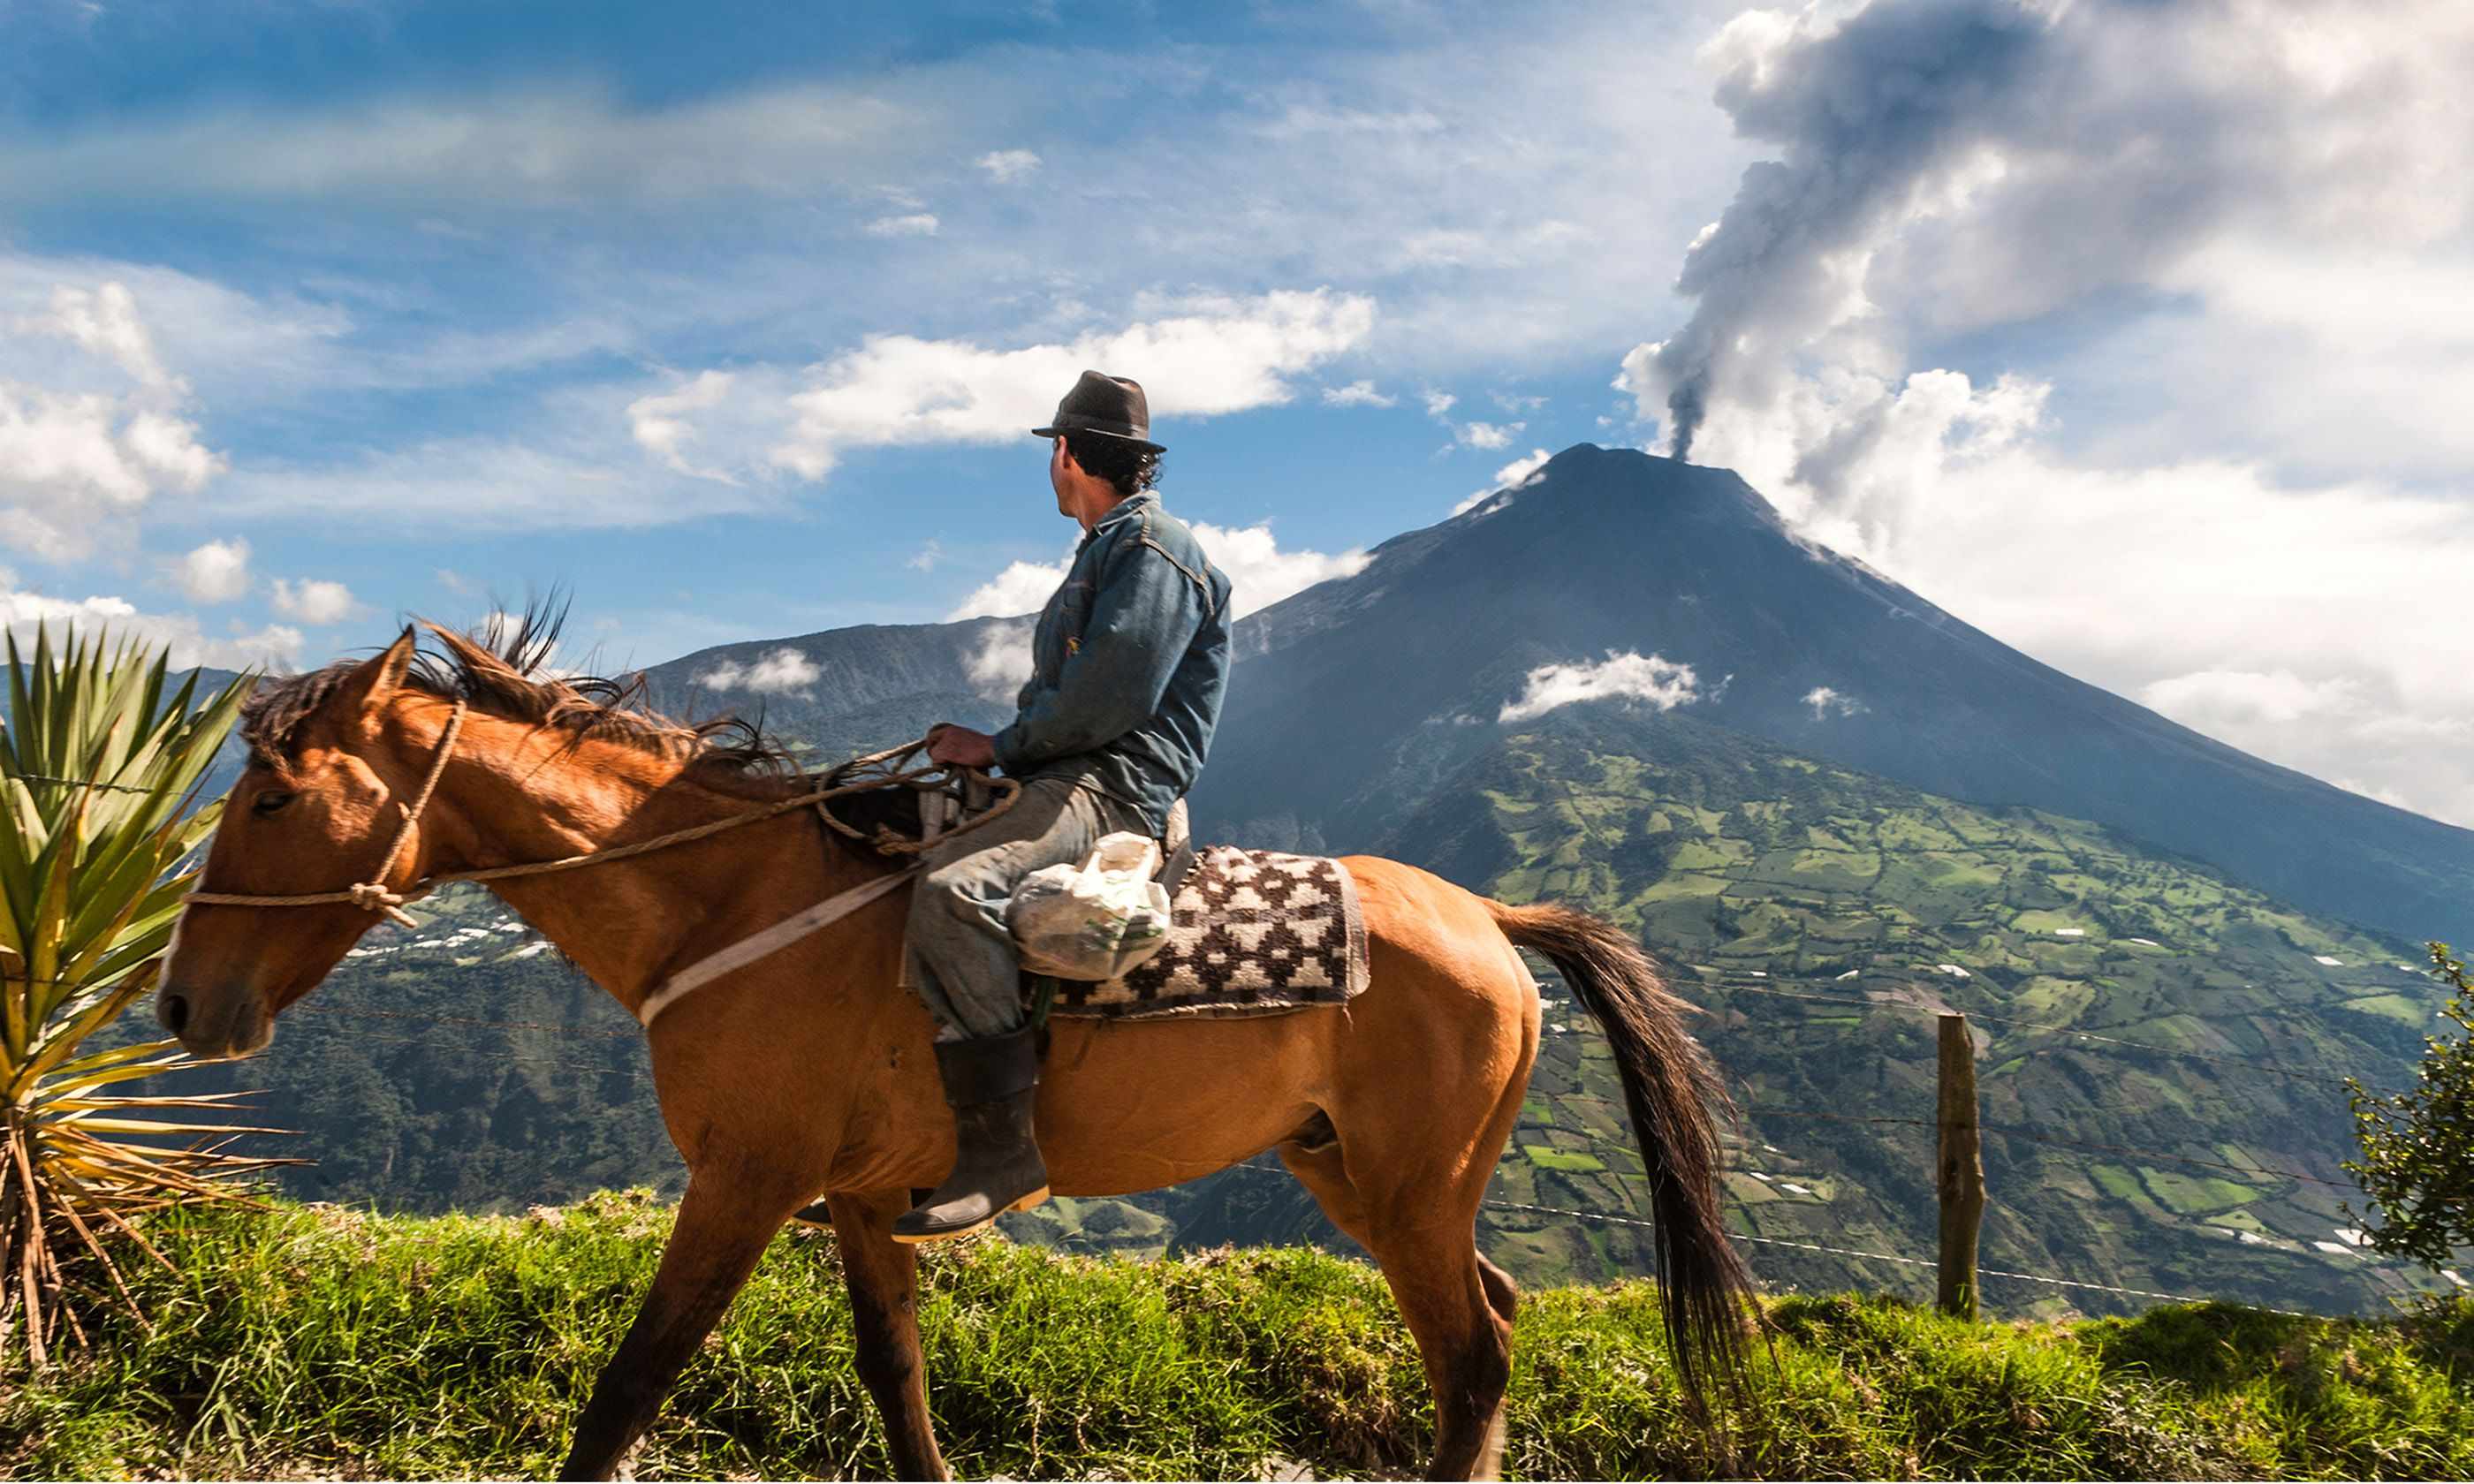 Farmer on horseback watching volcano erupt (Shutterstock.com)